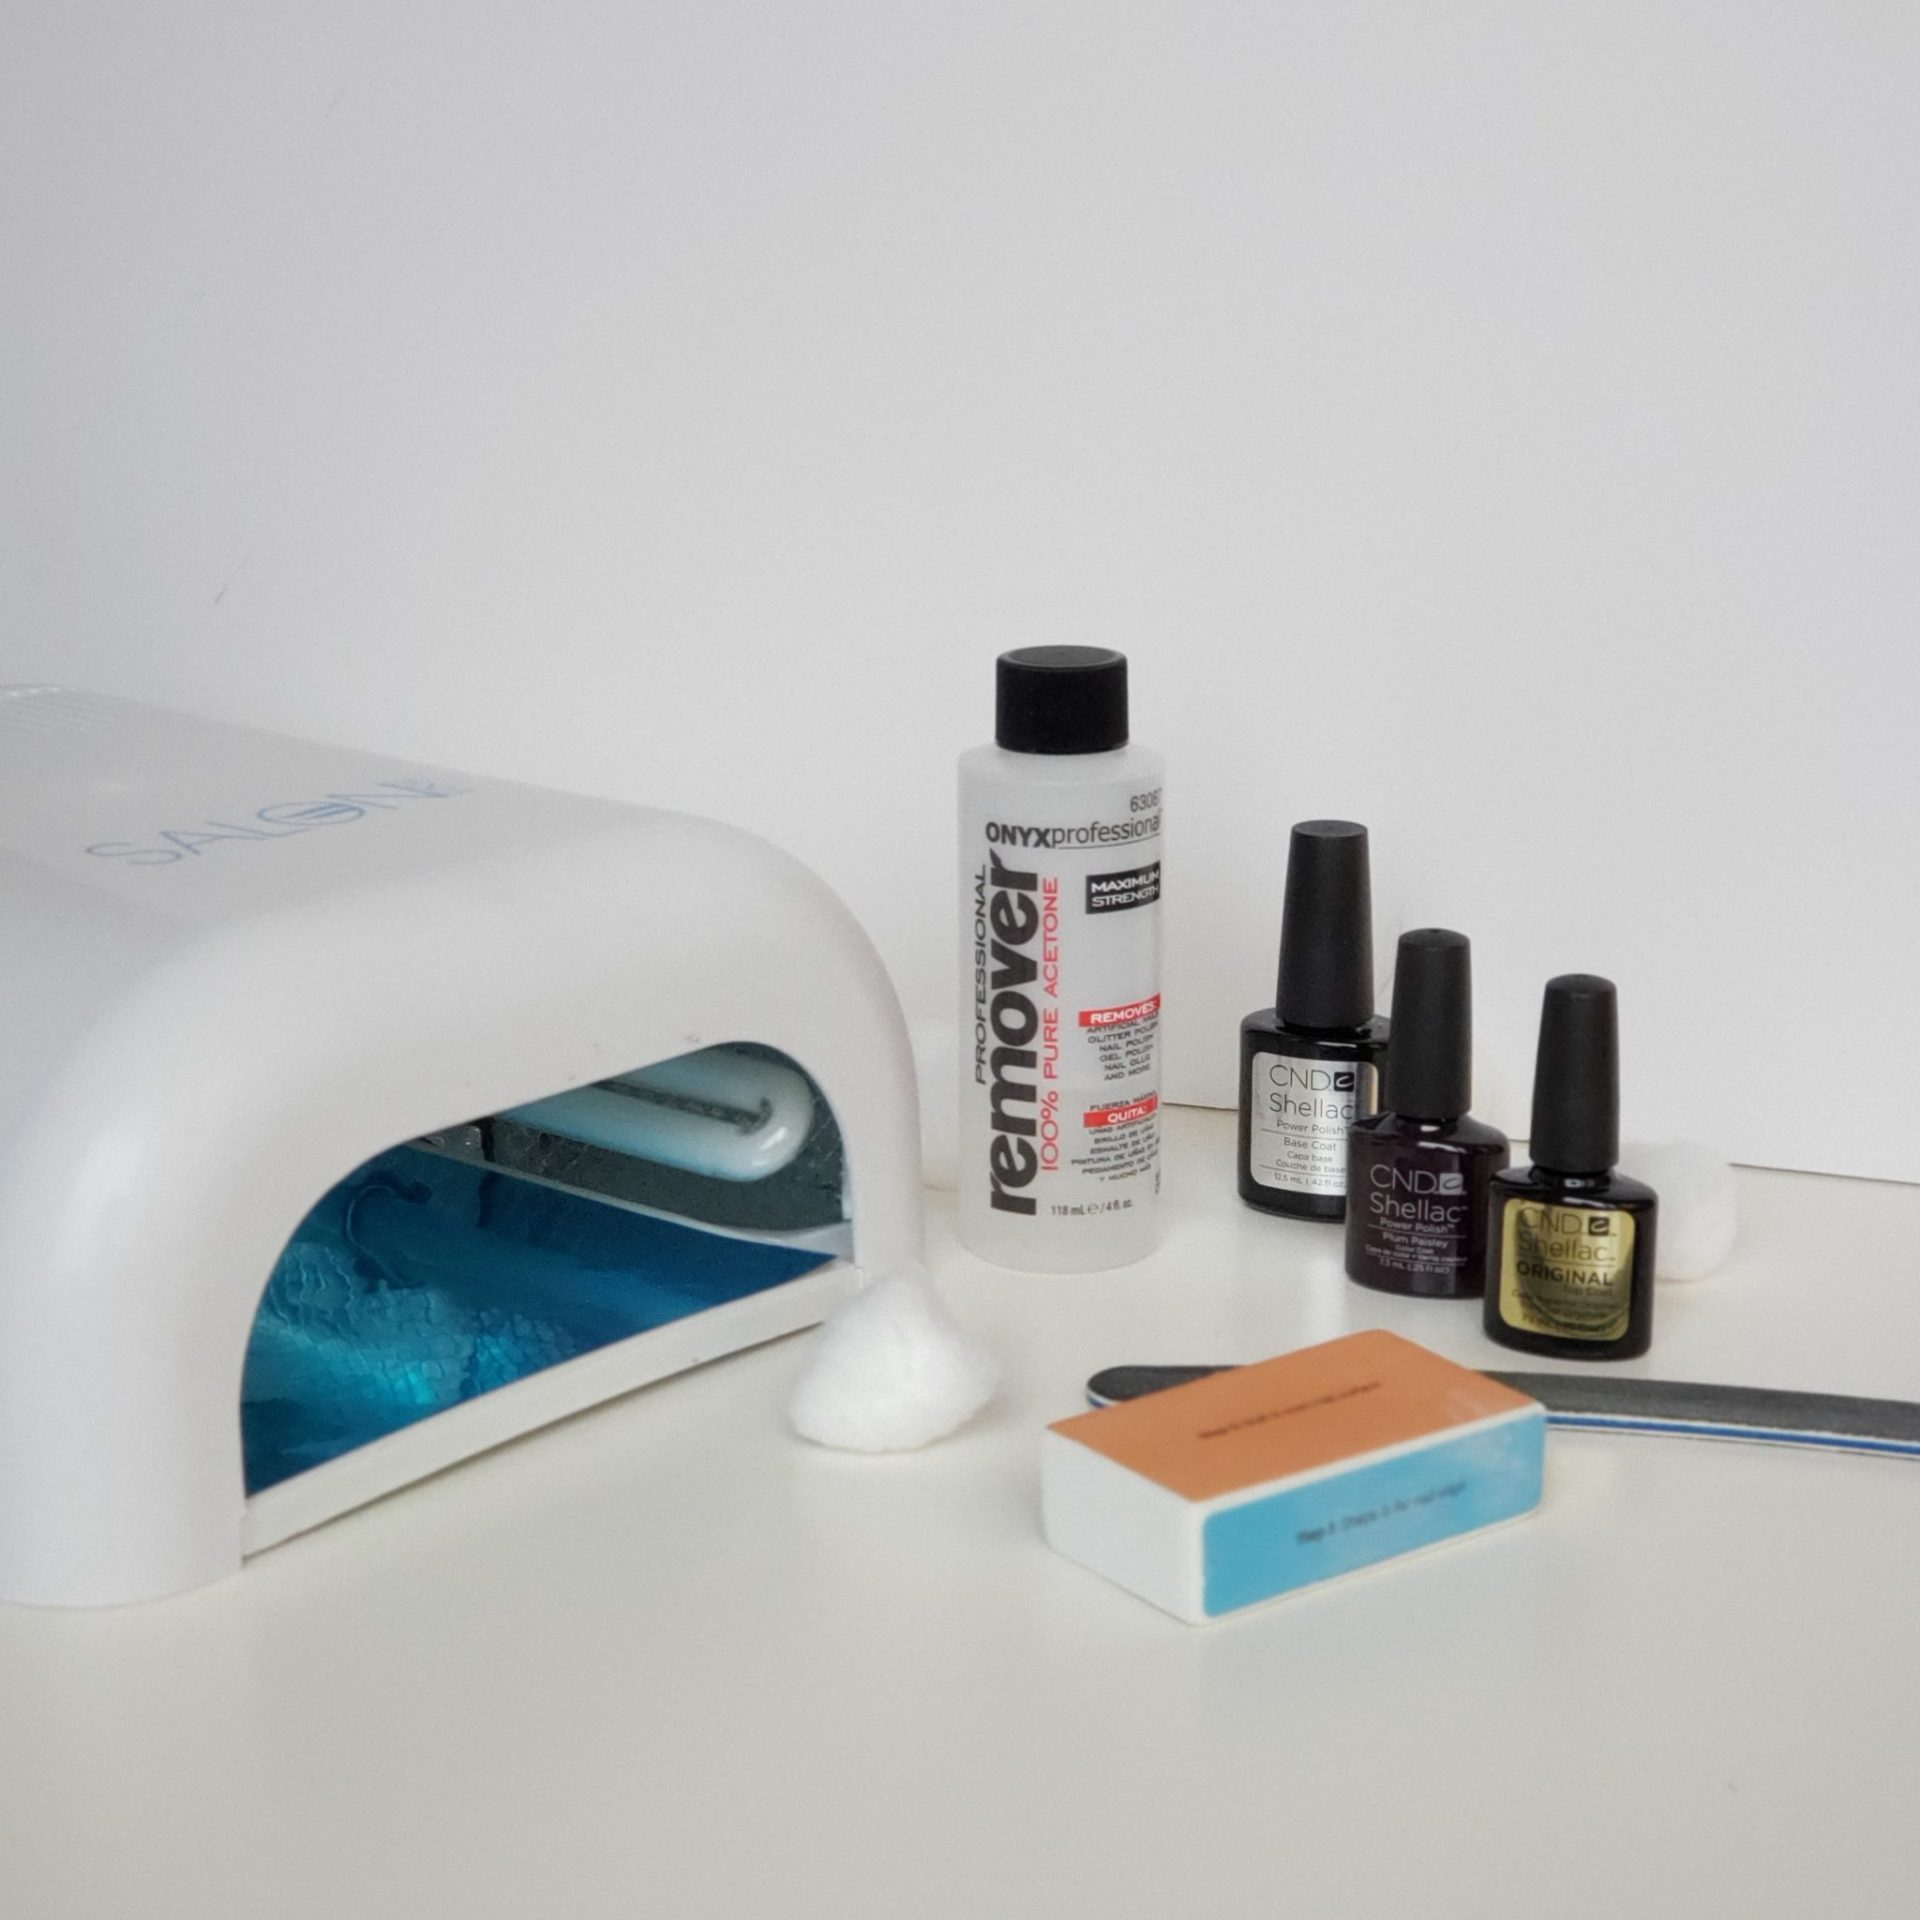 diy gel manicure supplies